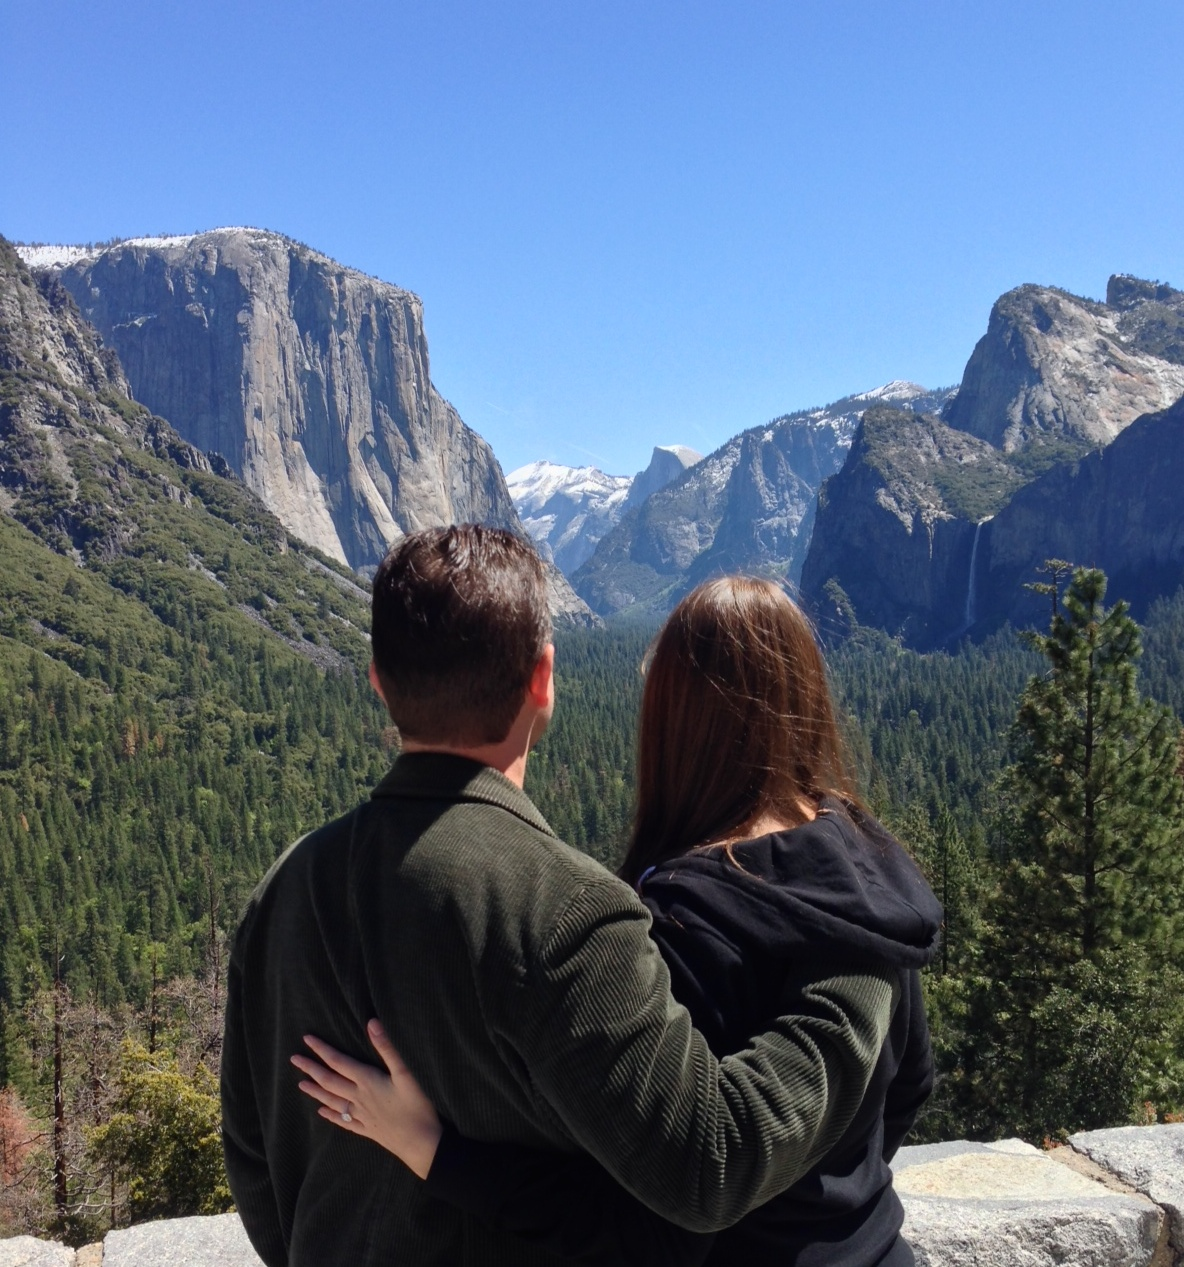 Image 1 of Danielle and Kyle | Yosemite National Park Proposal